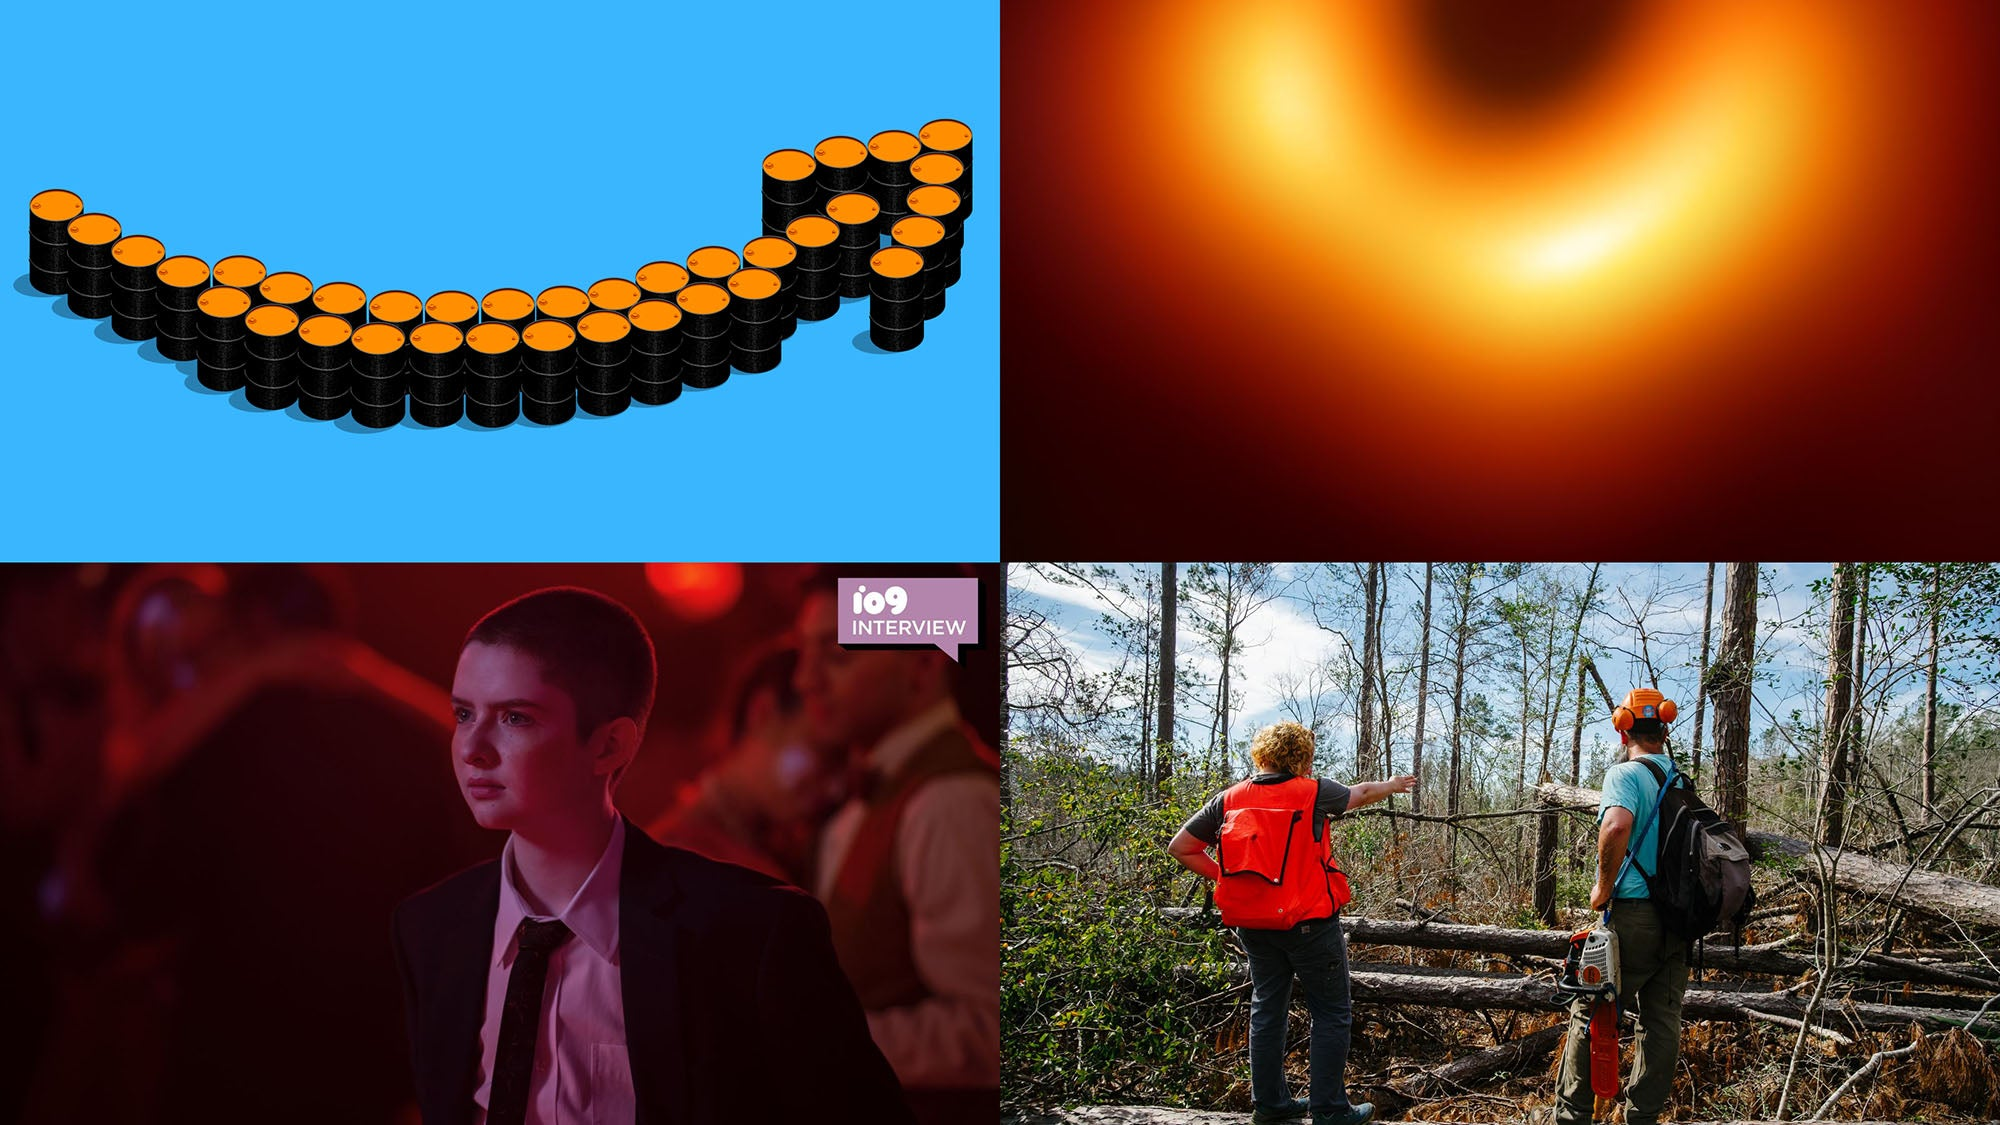 Amazon's Oil Addiction, Black Holes, And Tiny Ancient Humans: Best Gizmodo Stories Of The Week